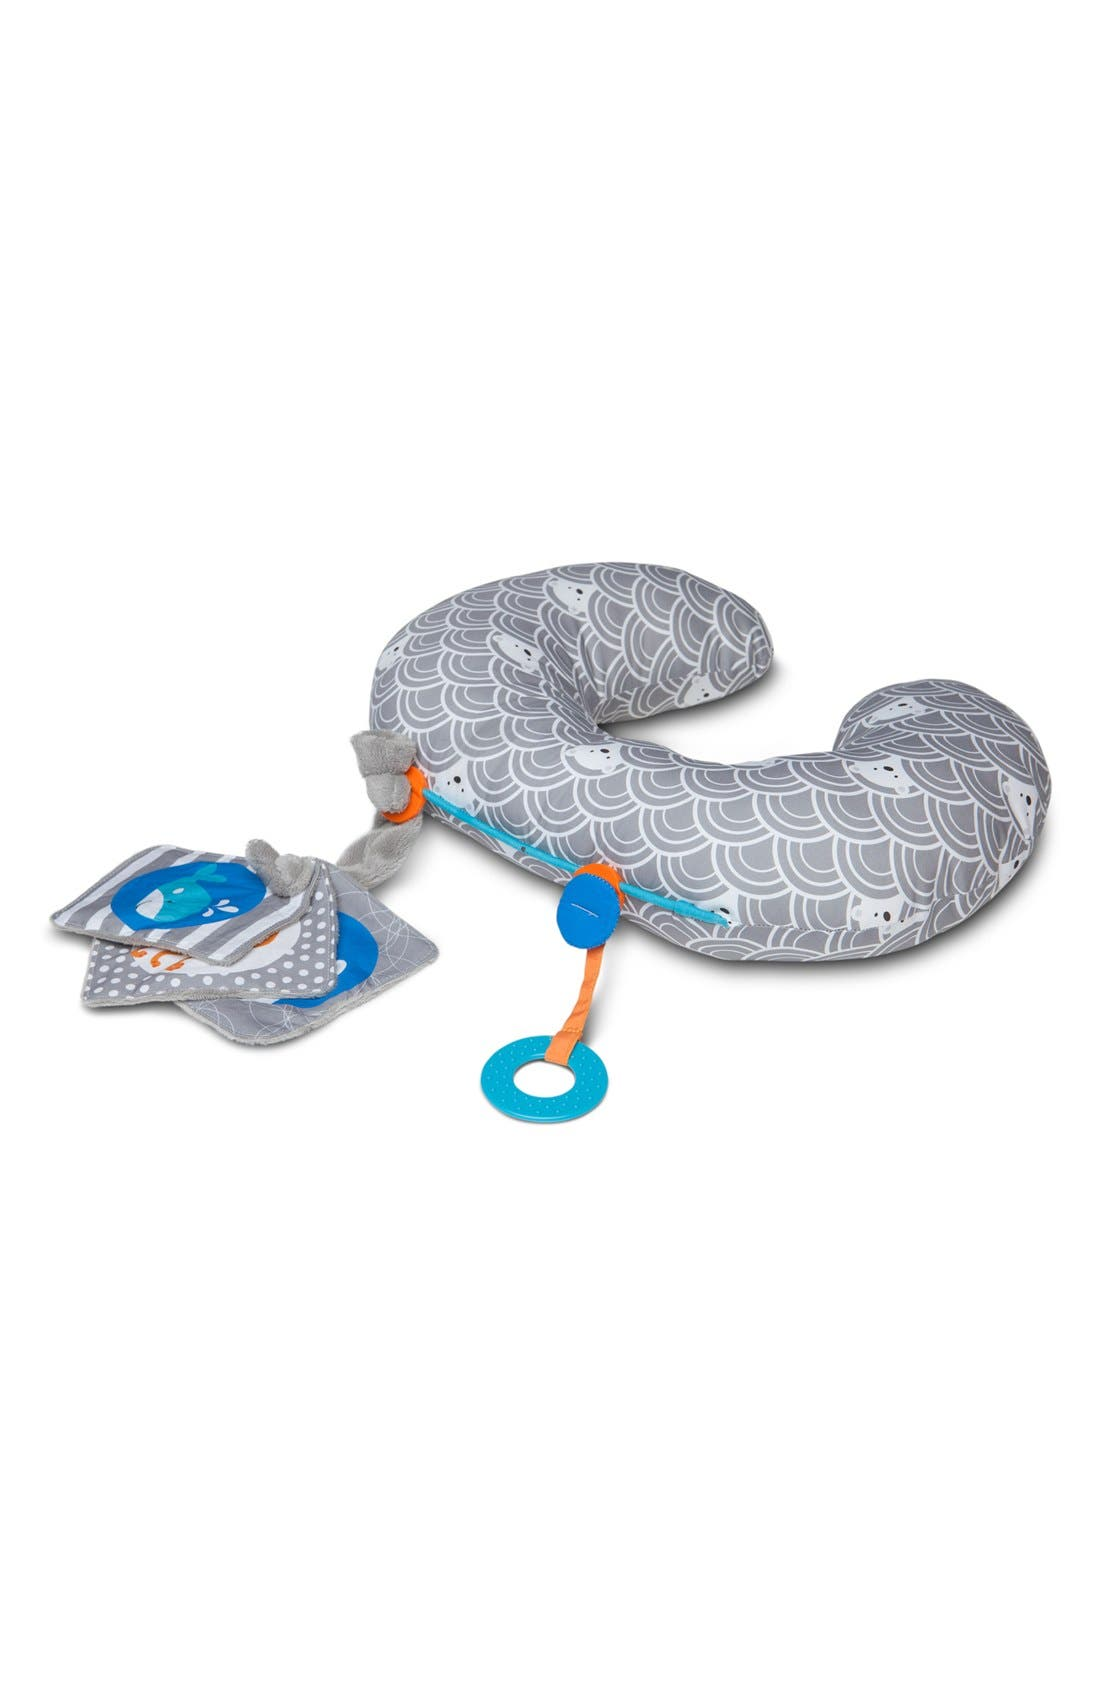 Tummy Time - SlideLine Collection Mini Pillow, Book & Teething Ring,                             Alternate thumbnail 3, color,                             GREY